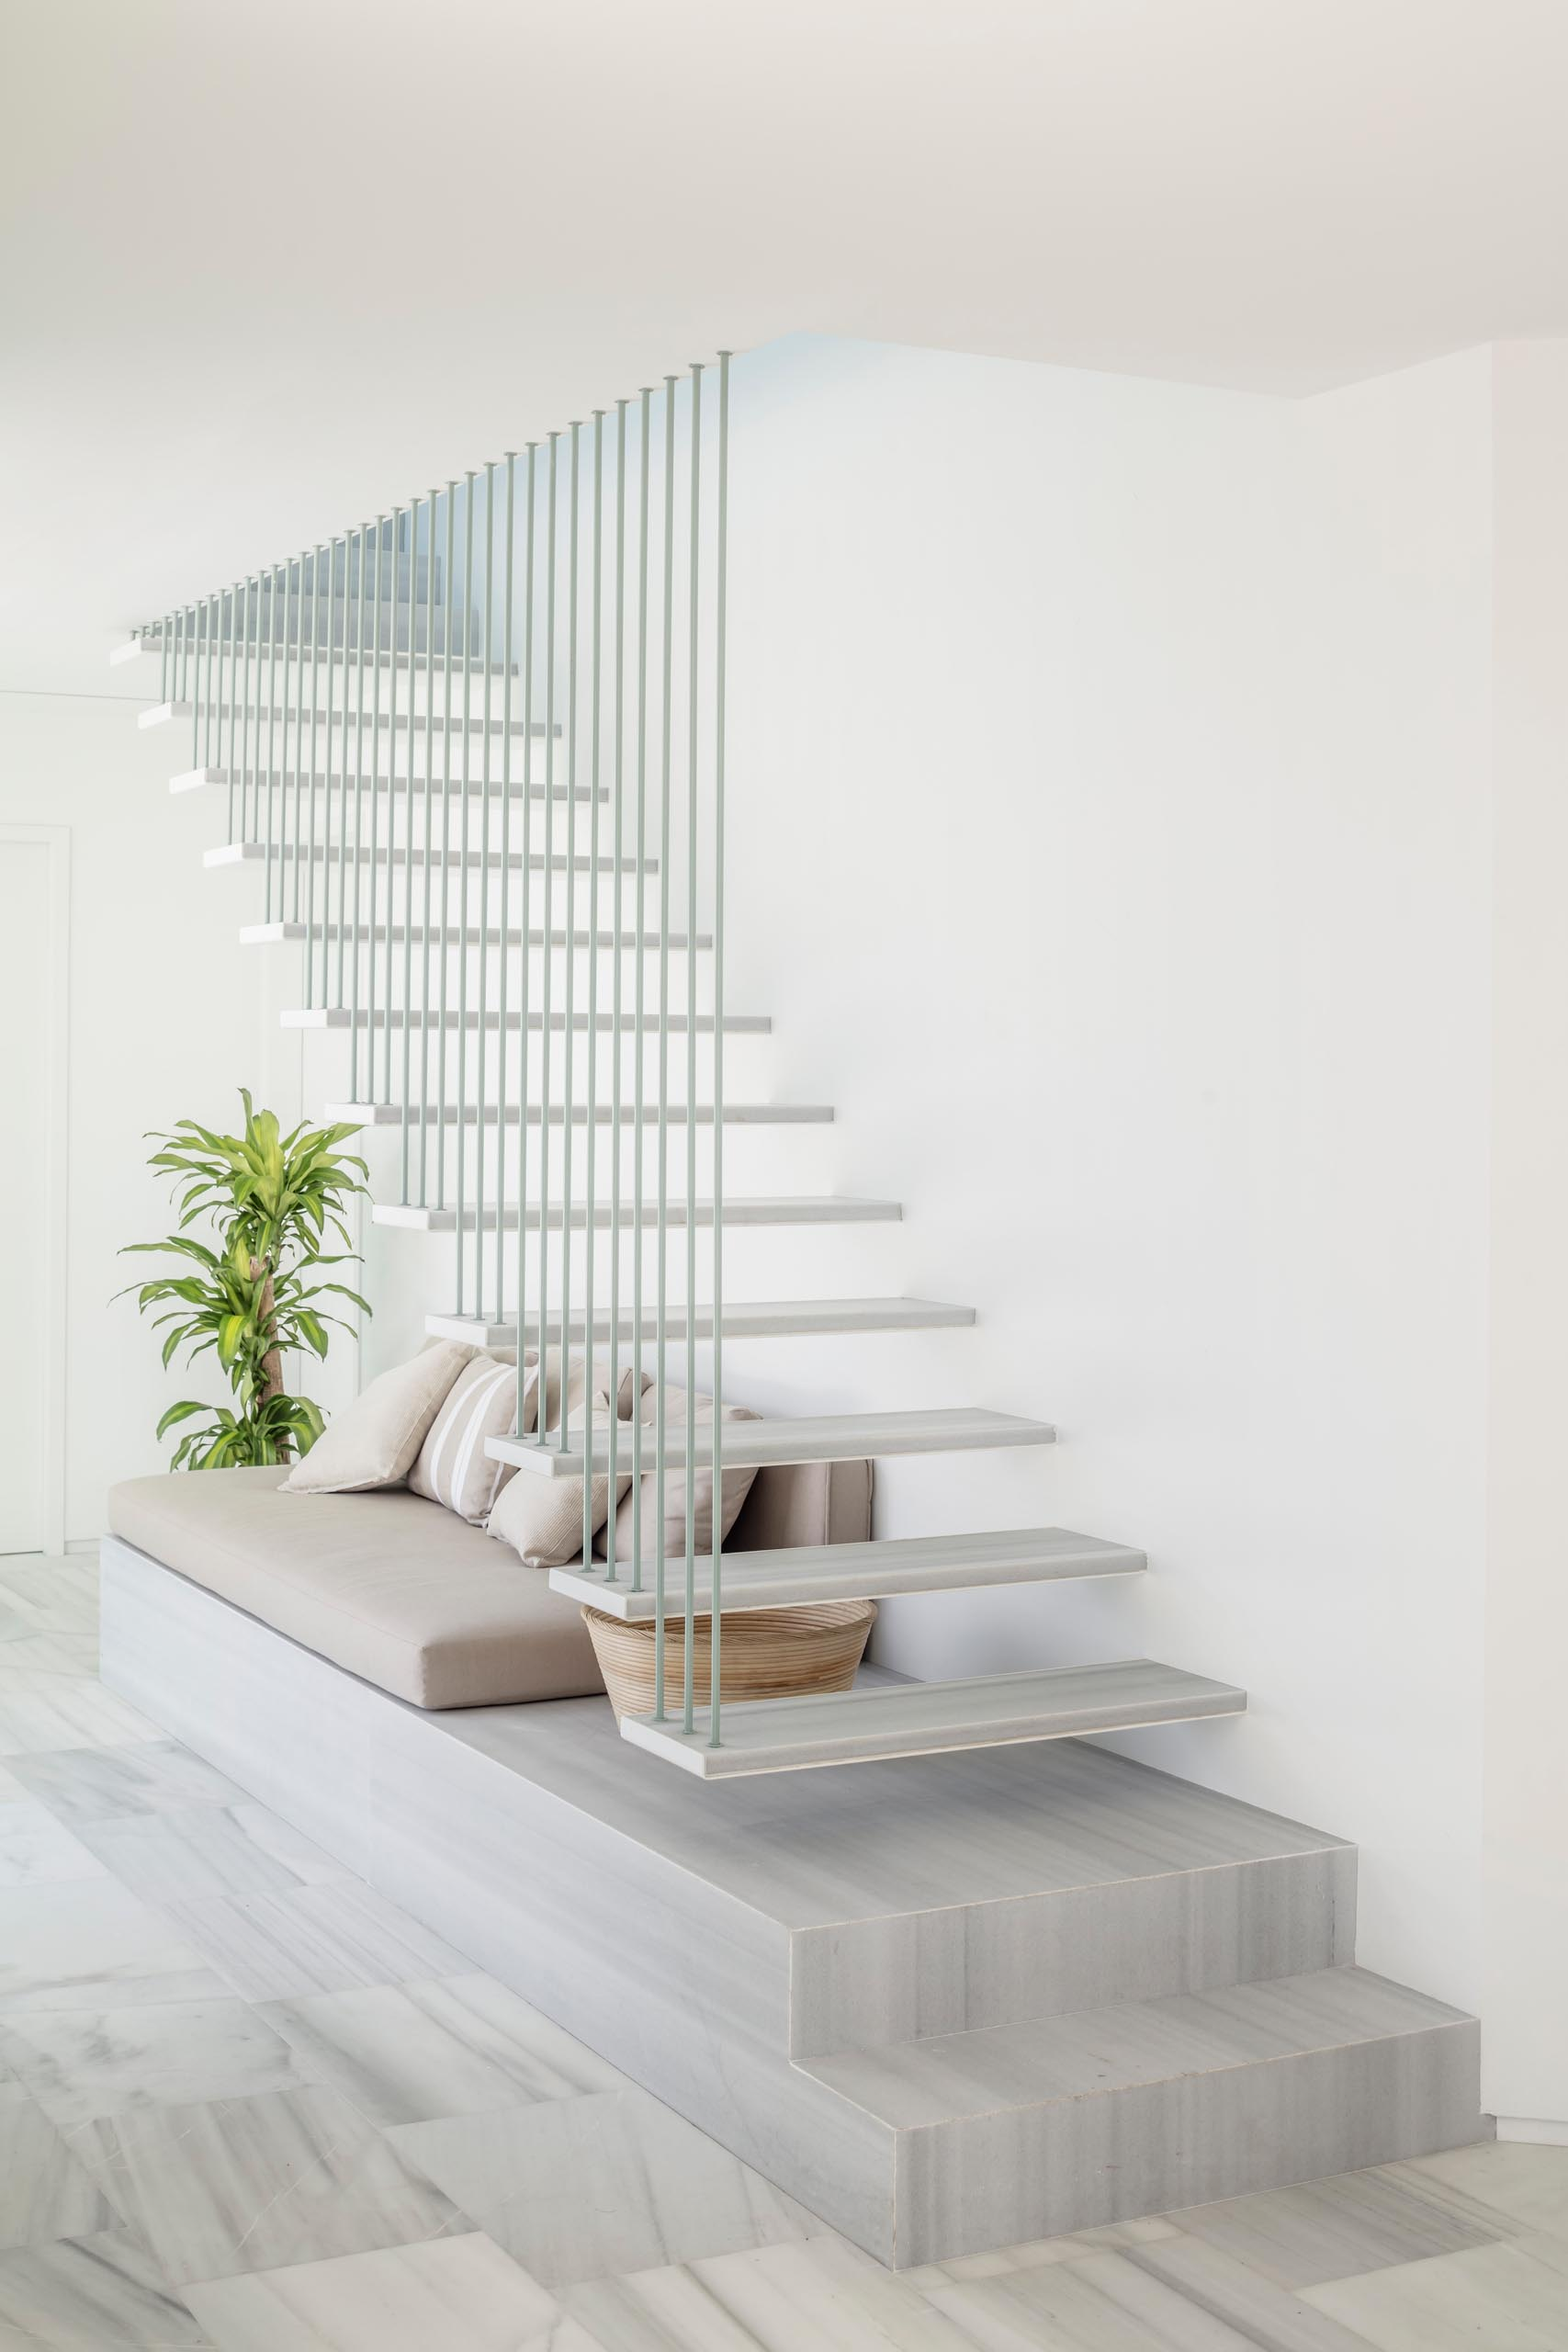 A modern staircase with marble stair treads and a seating nook.